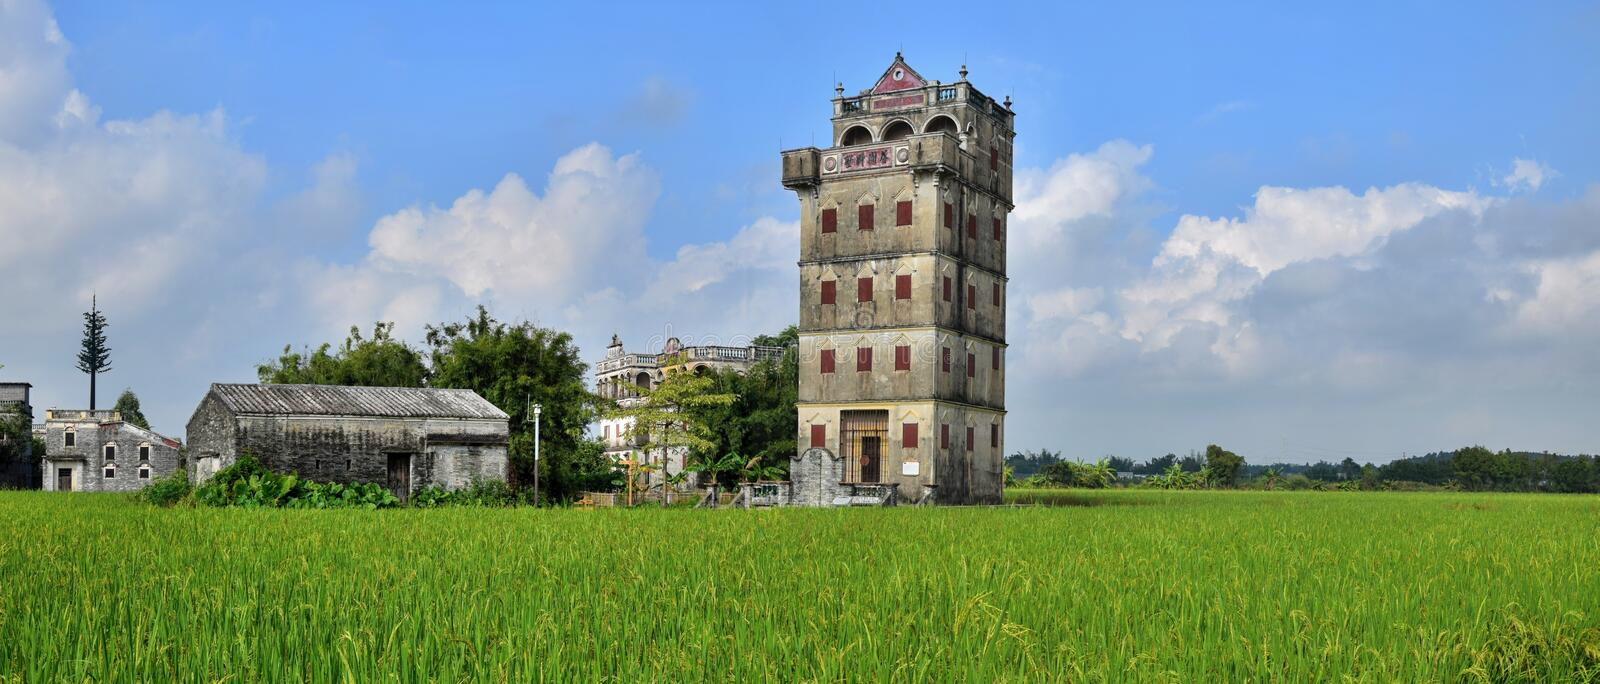 The Kaiping Diaolou watchtowers in Guangdong province in China. Are fortified multi-storey towers served mainly as protection against forays by bandits, a few stock photography